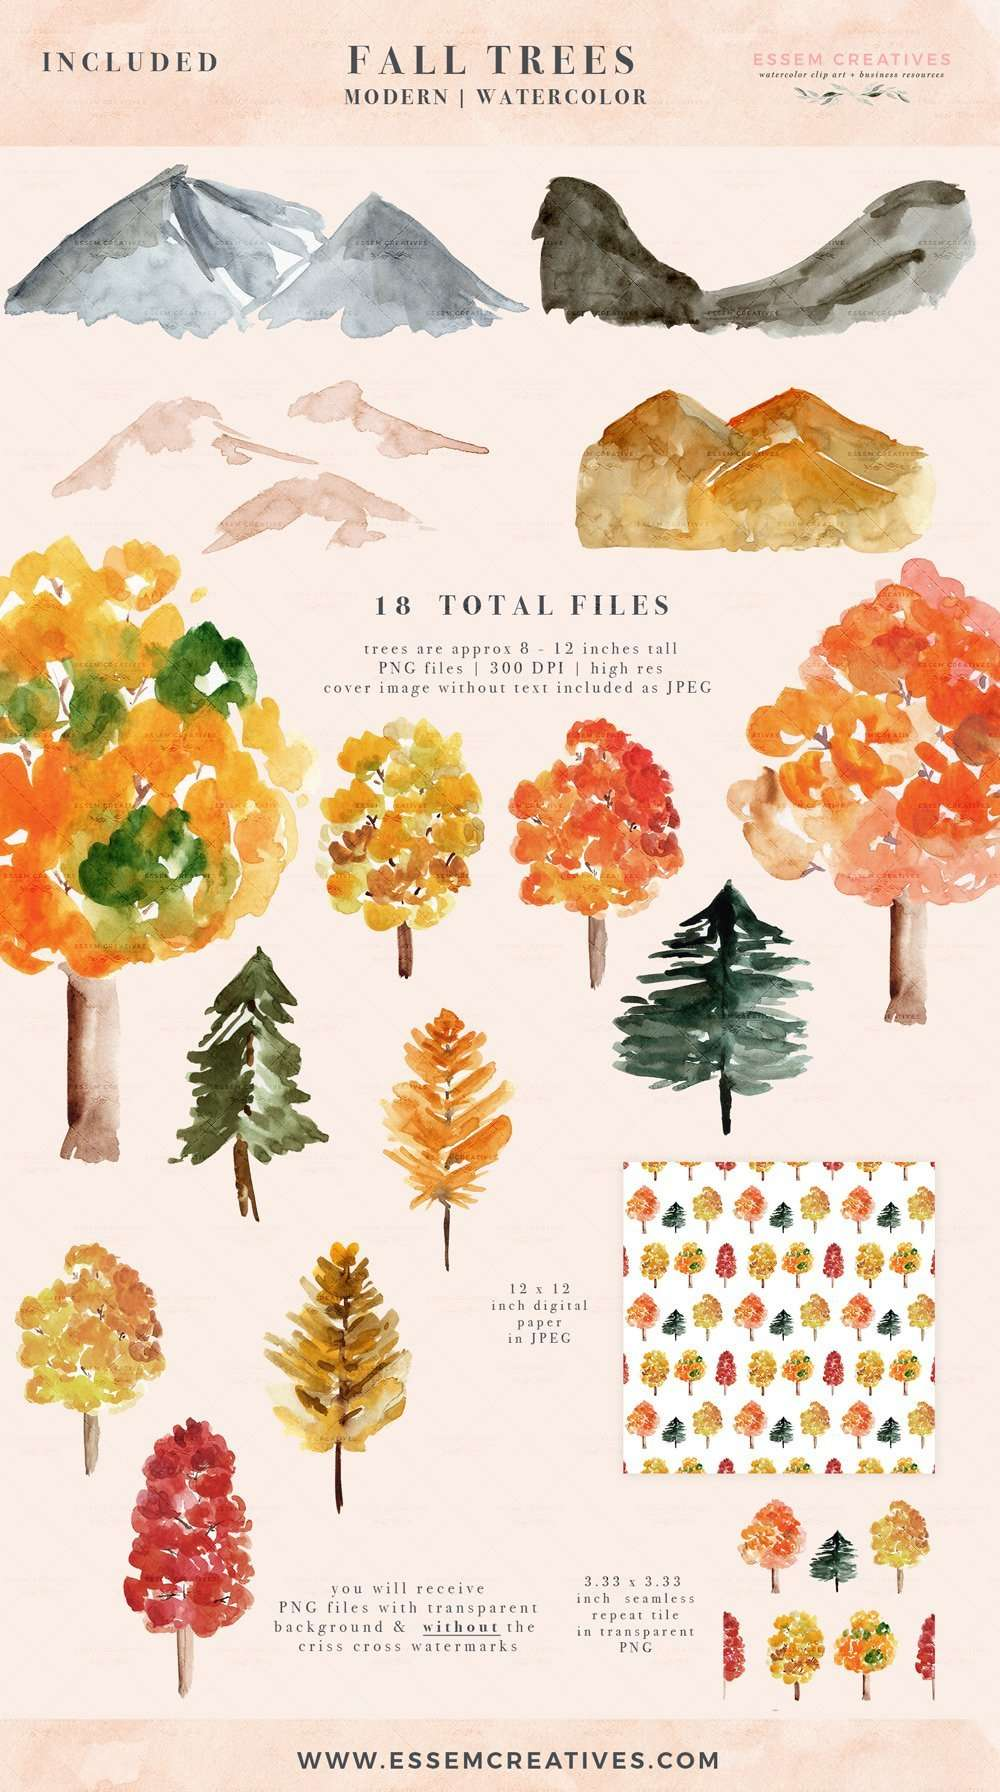 Rustic Watercolor Rustic Fall Trees Woodland Forest Foliage